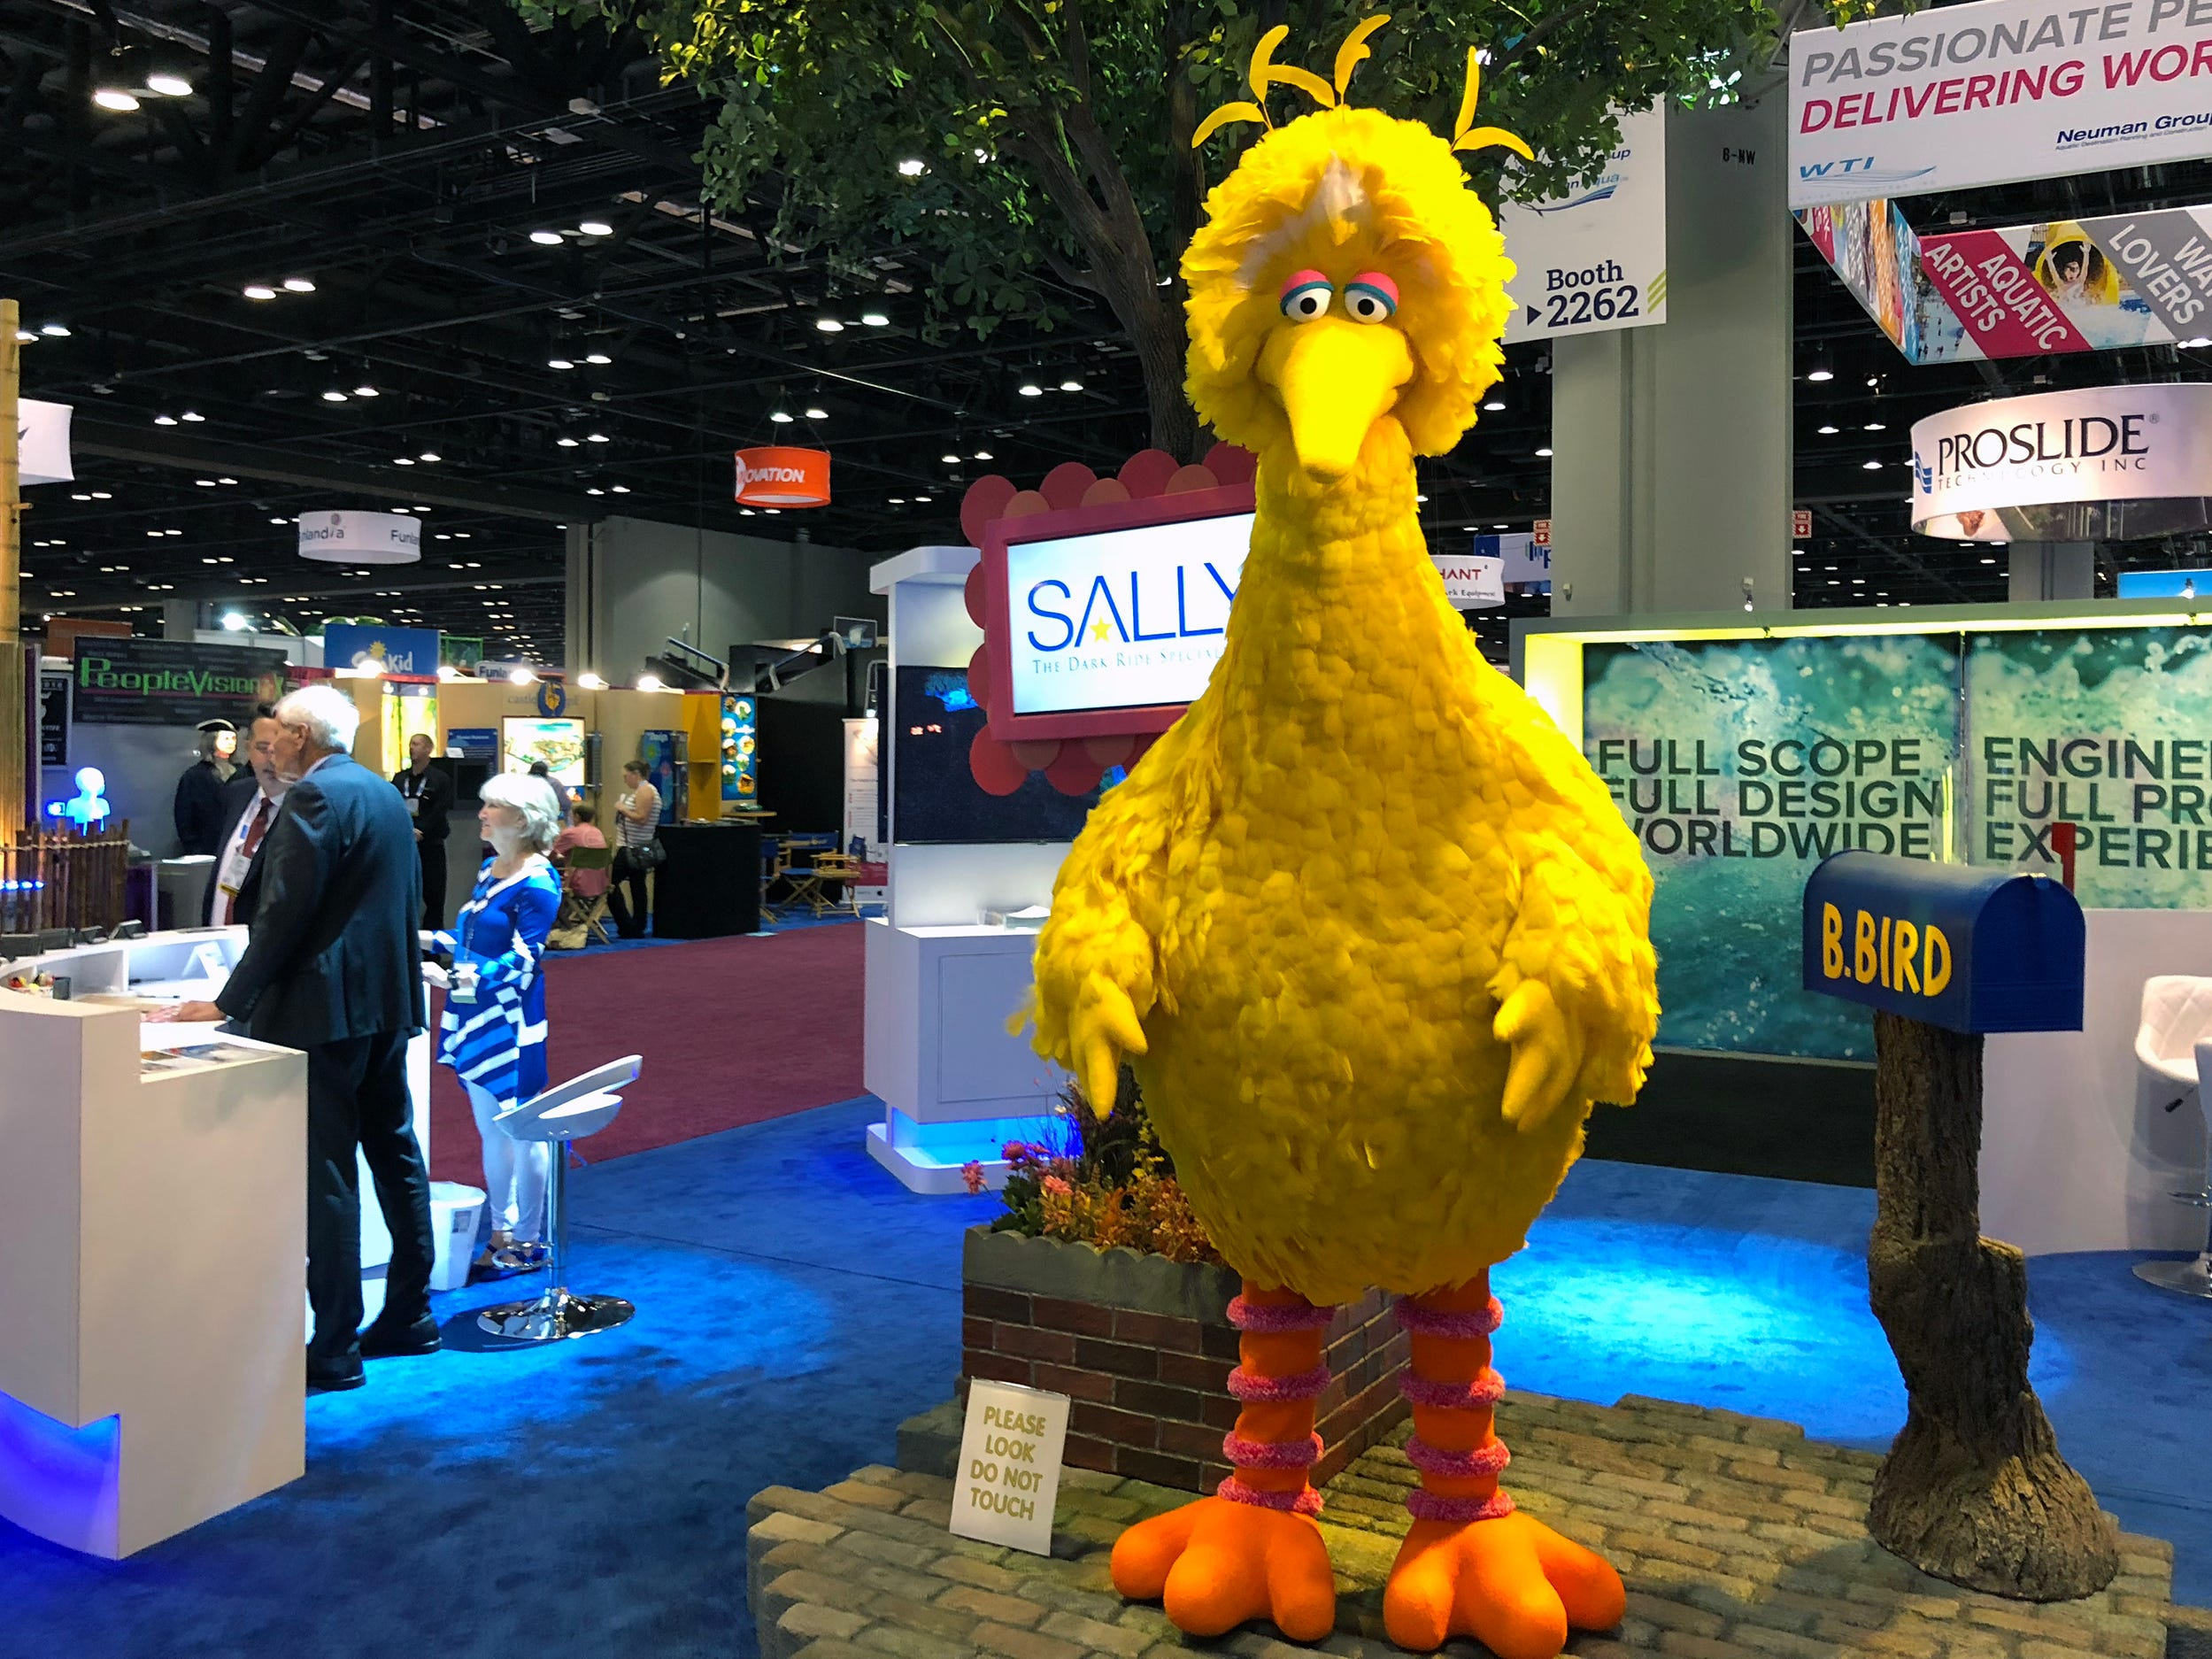 One of the industry's leading designers of interactive dark rides, the Sally Corporation, had an impressive Big Bird animatronic character on display to promote the interactive Sesame Street attraction it is building for a 2019 debut at PortAventura Park in Salou, Spain.